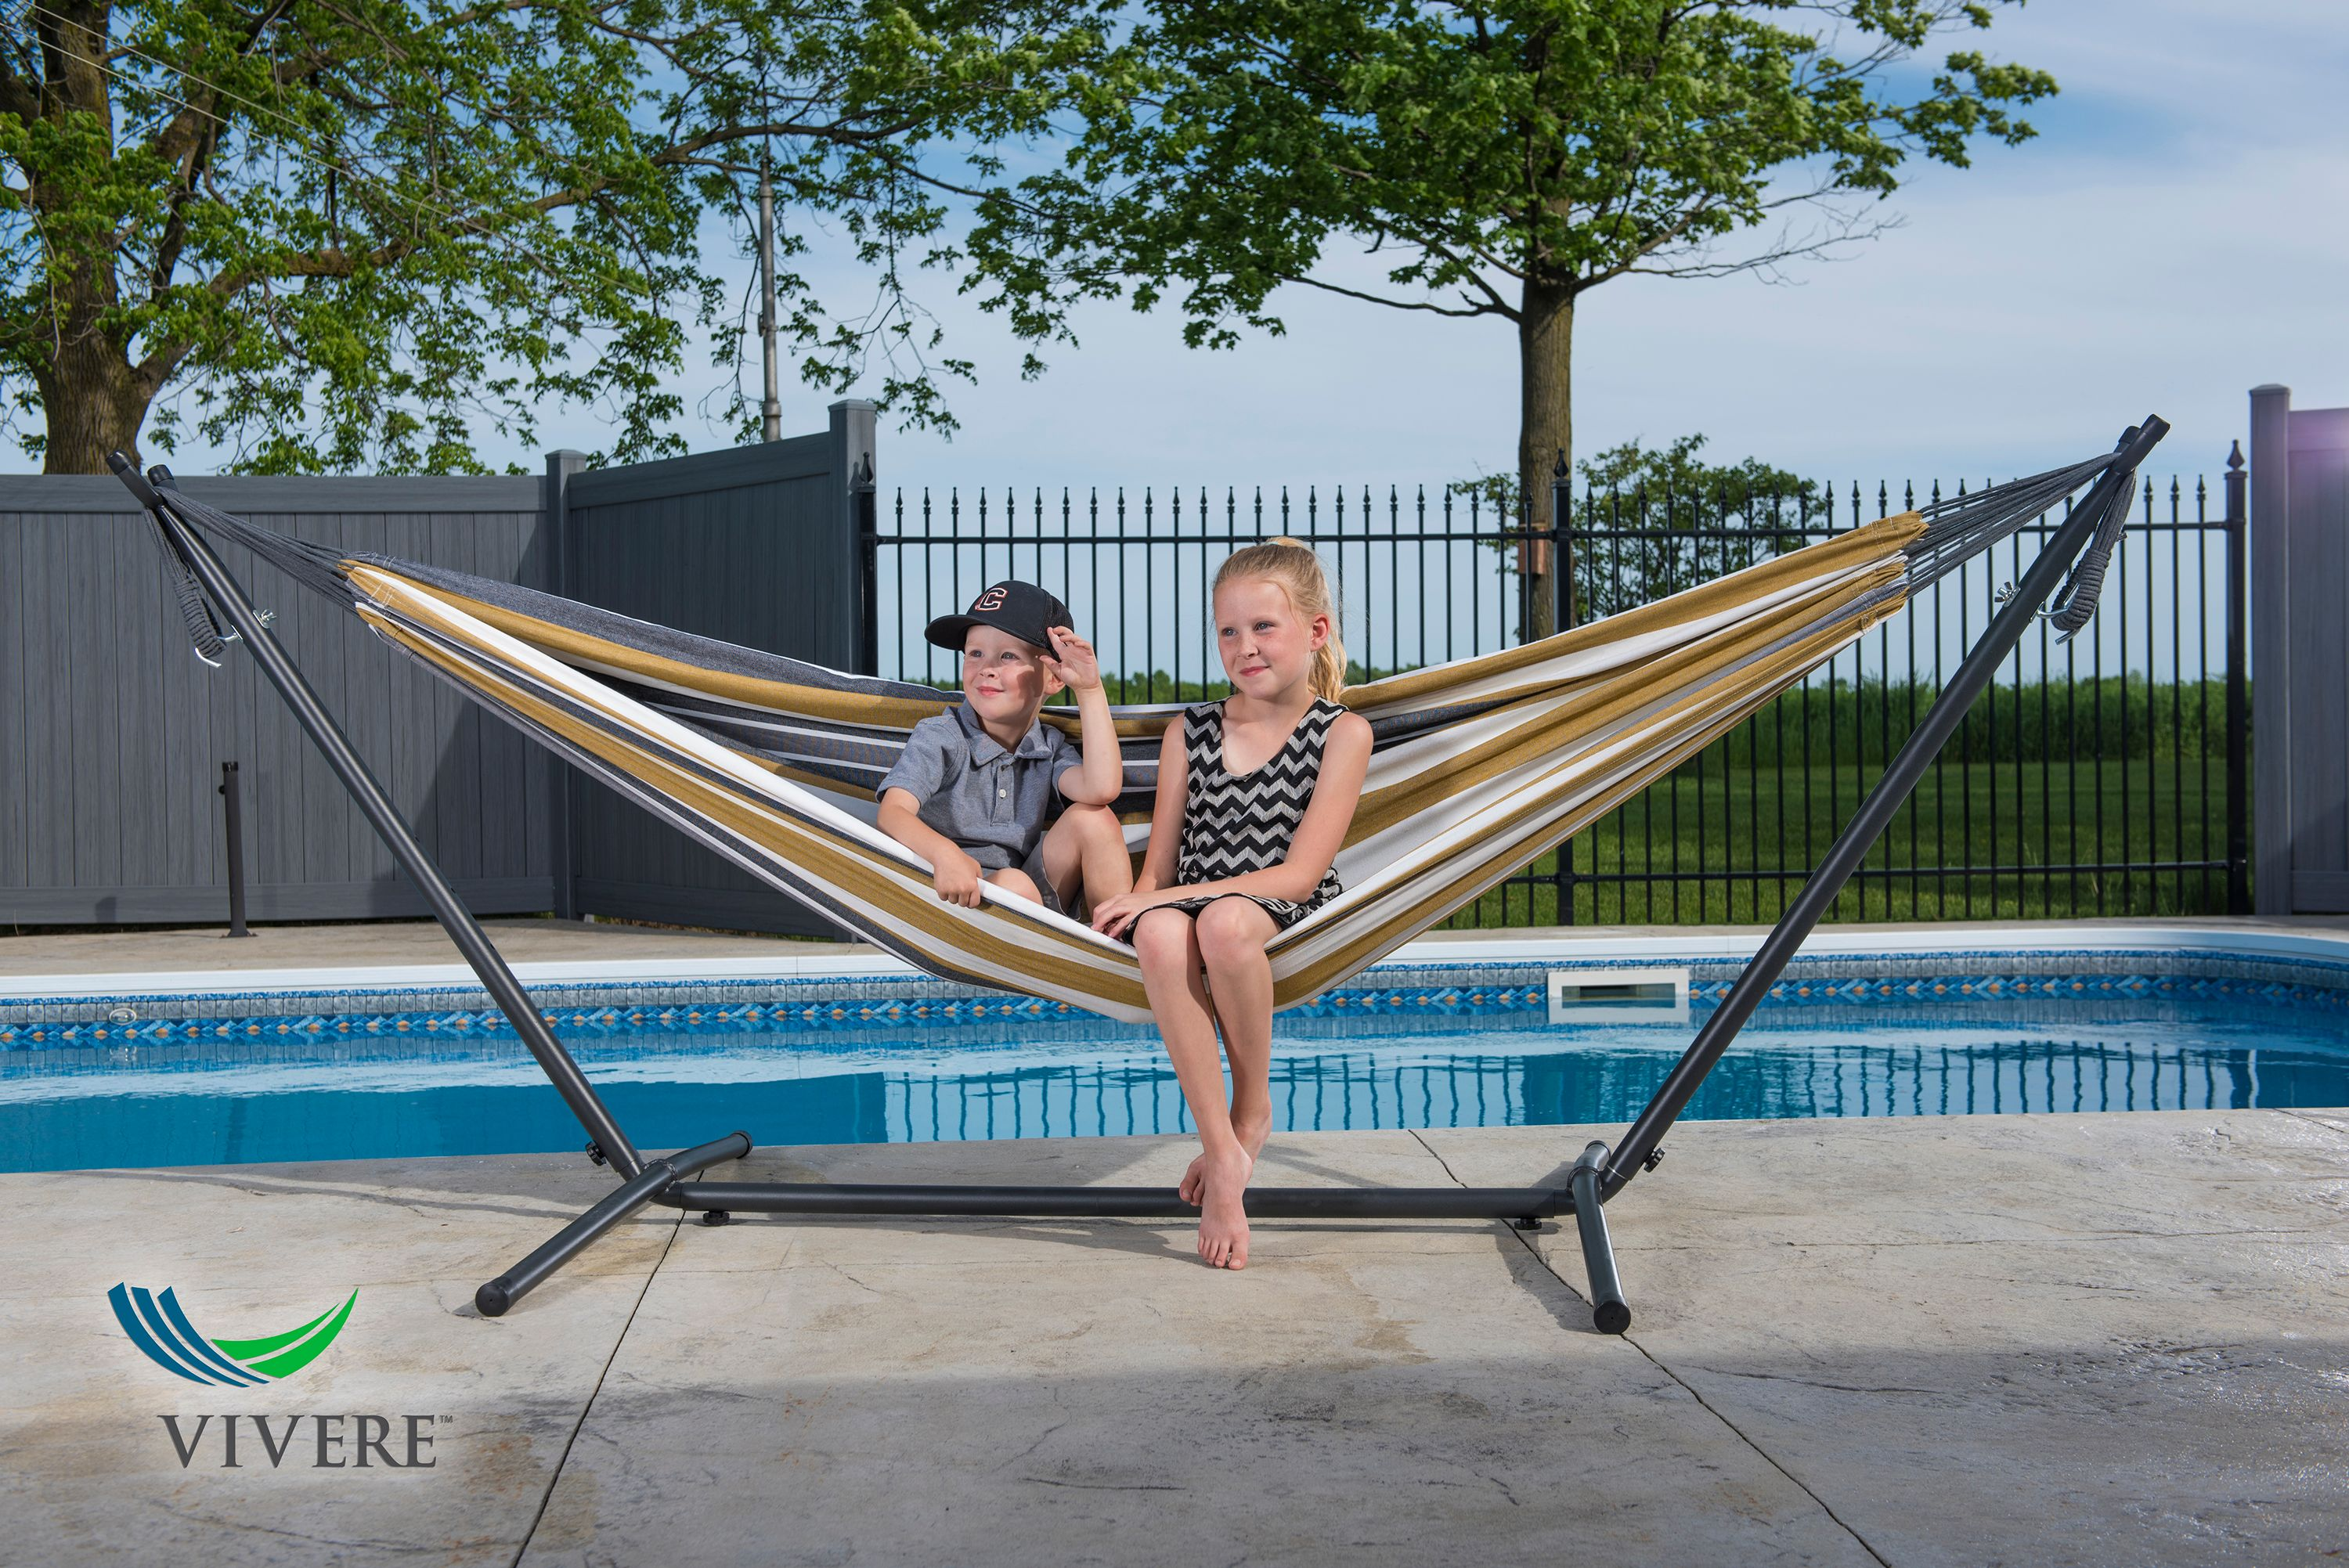 hammock stand double moon oasis chair combo with fabric hammocks desert costco vivere review